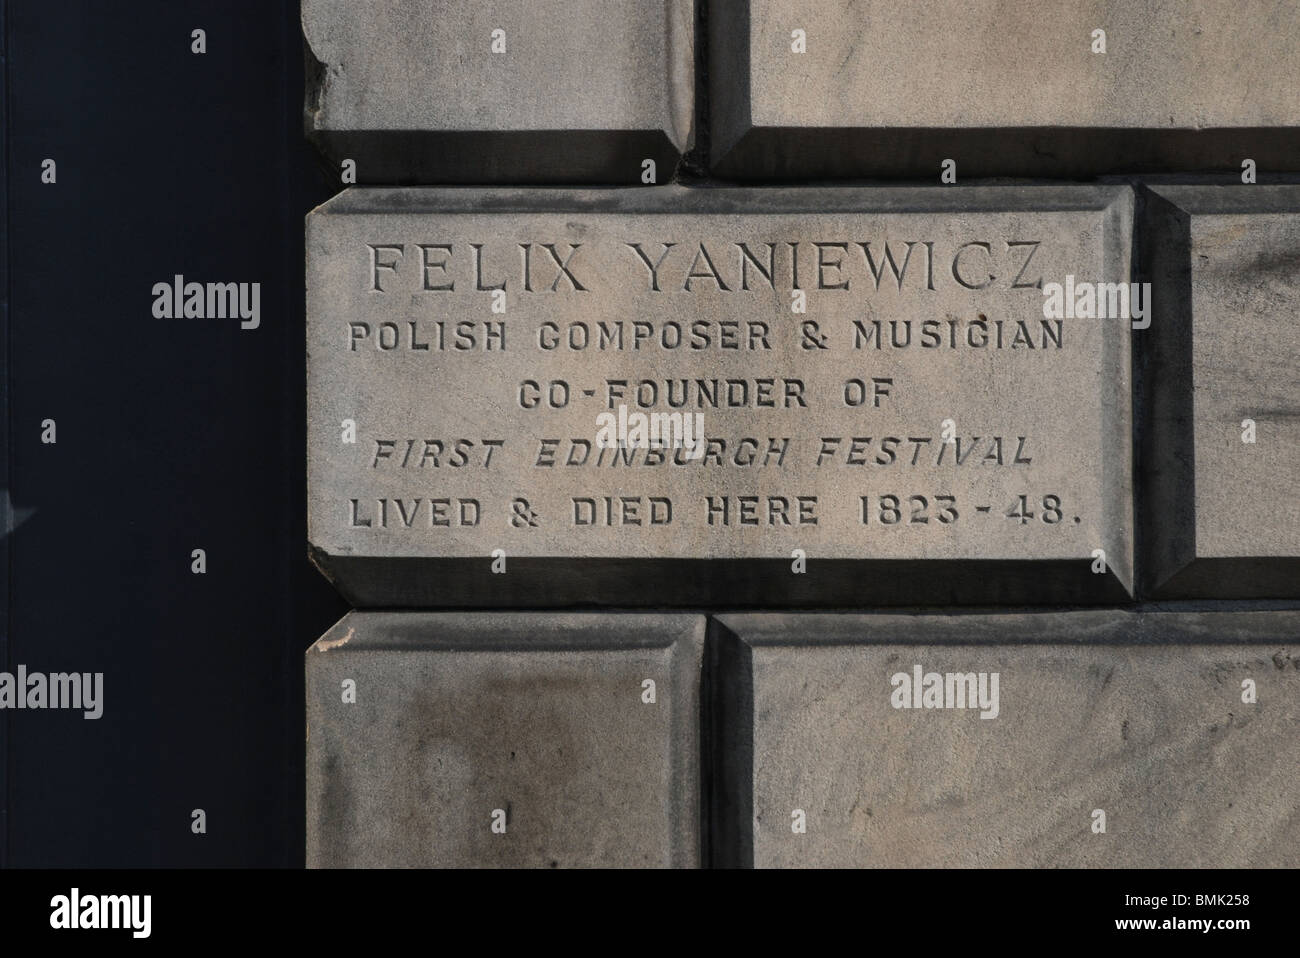 Inscription by the door of  84 Great King Street in Edinburgh where Felix Yaniewicz, Polish composer and musician - Stock Image